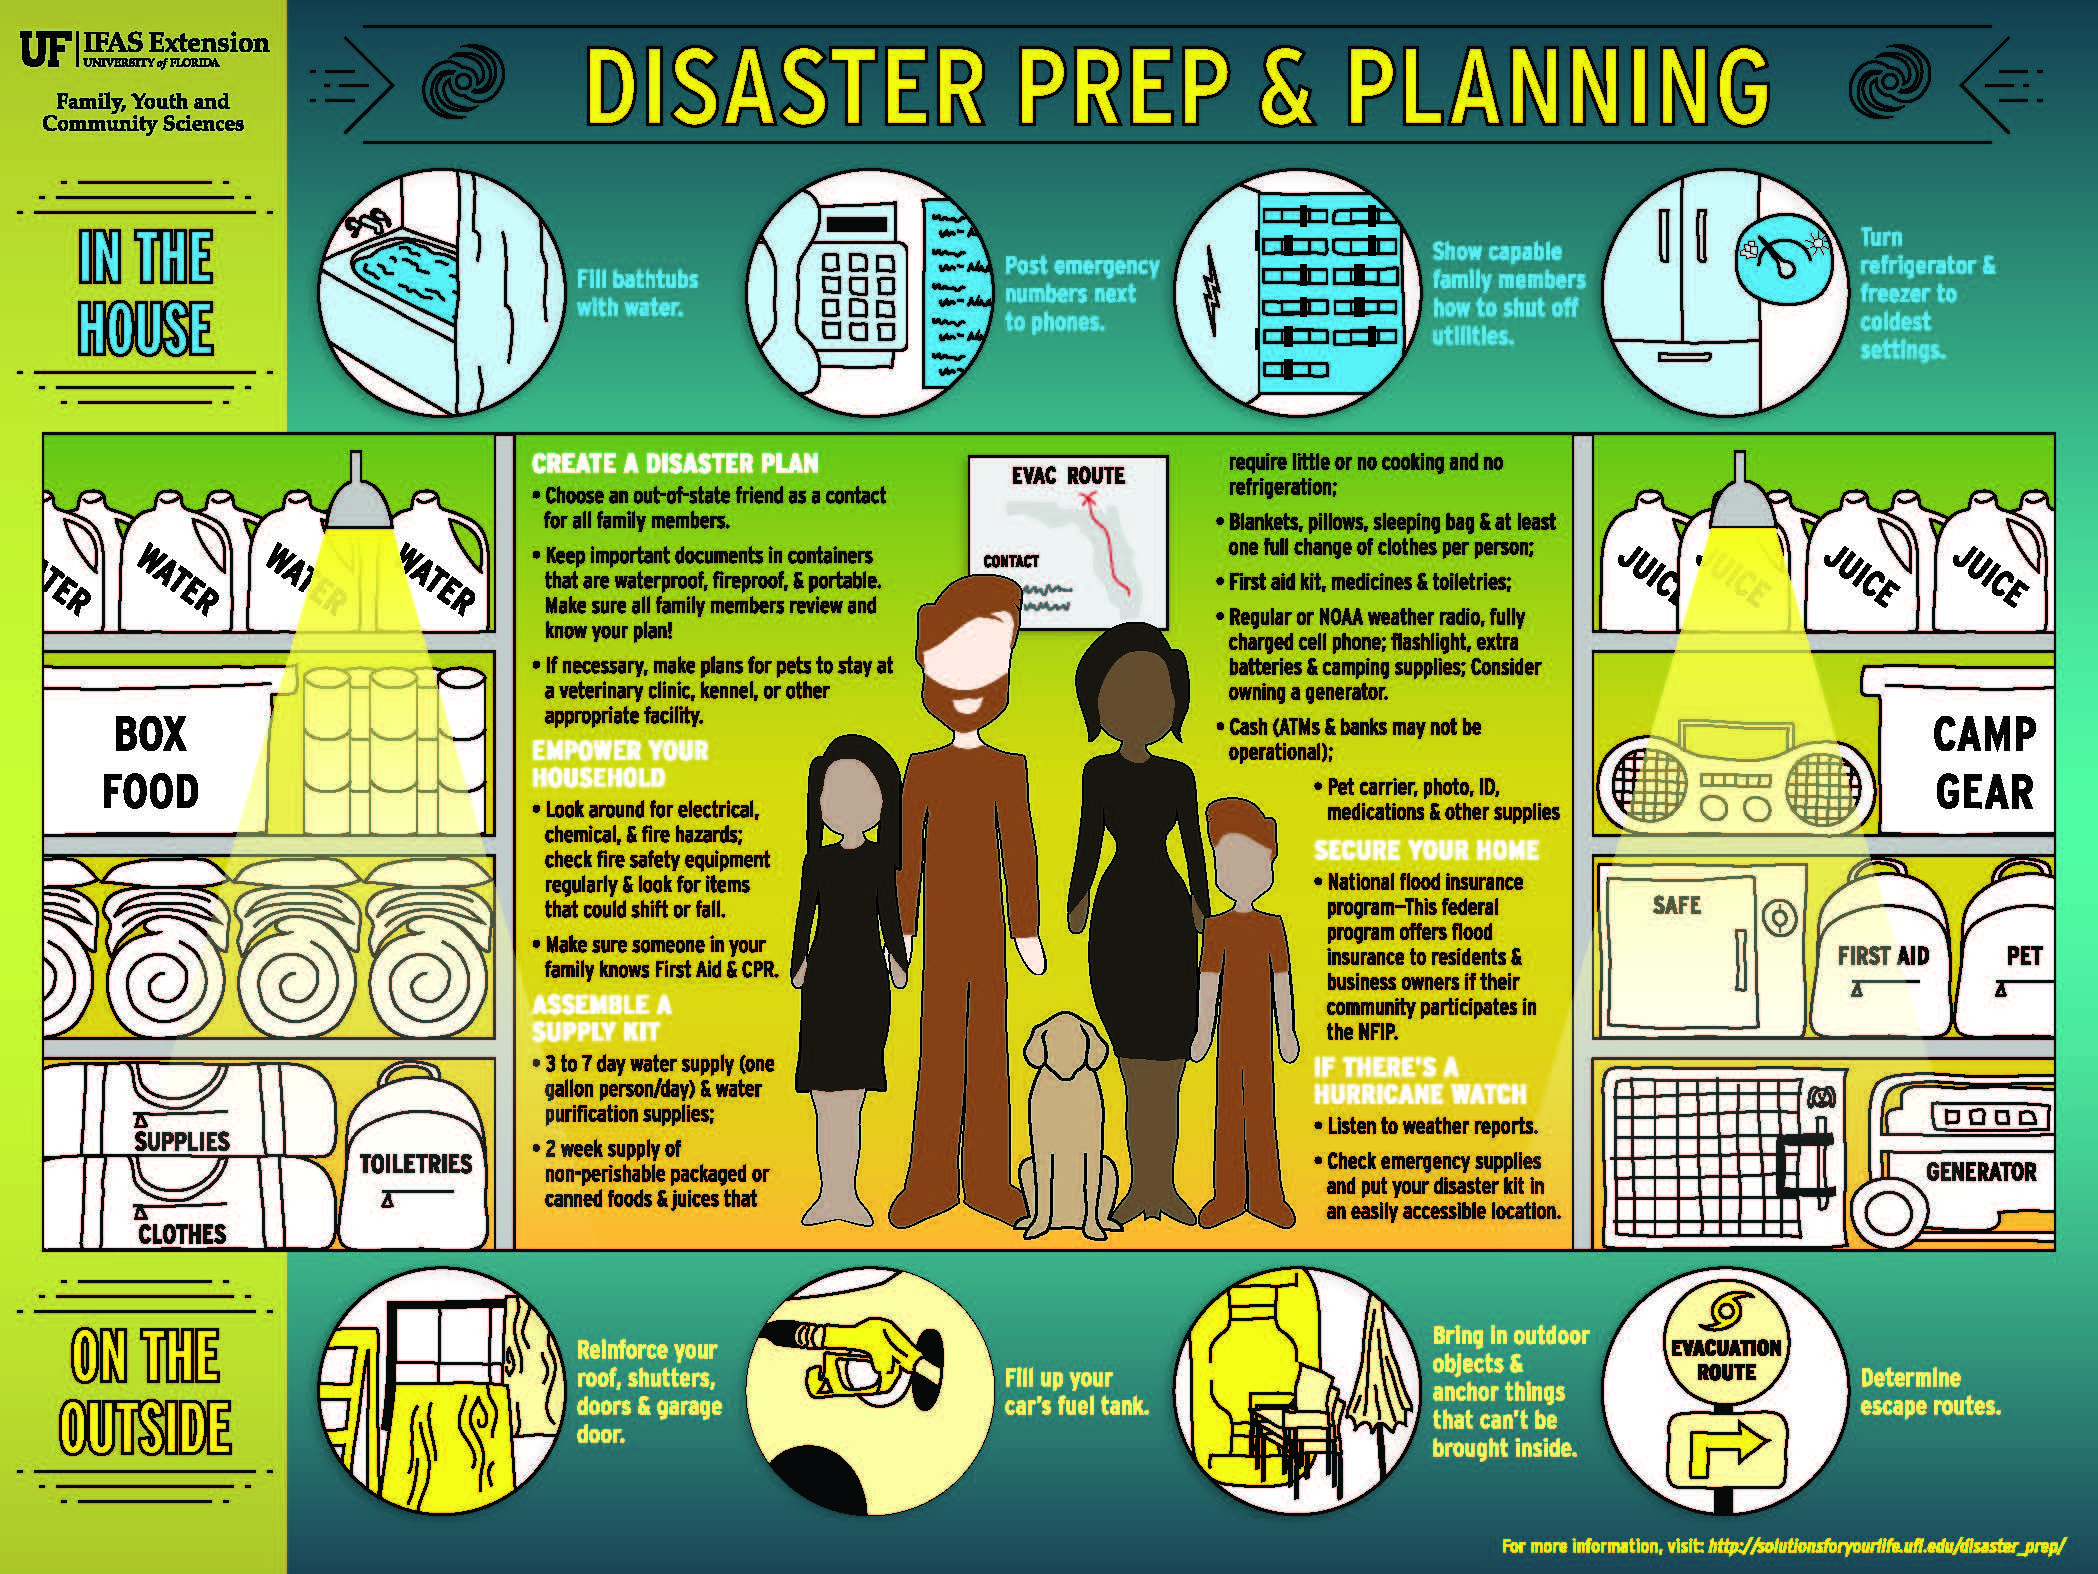 University Of Florida Ifas Disaster Prep Amp Planning Poster